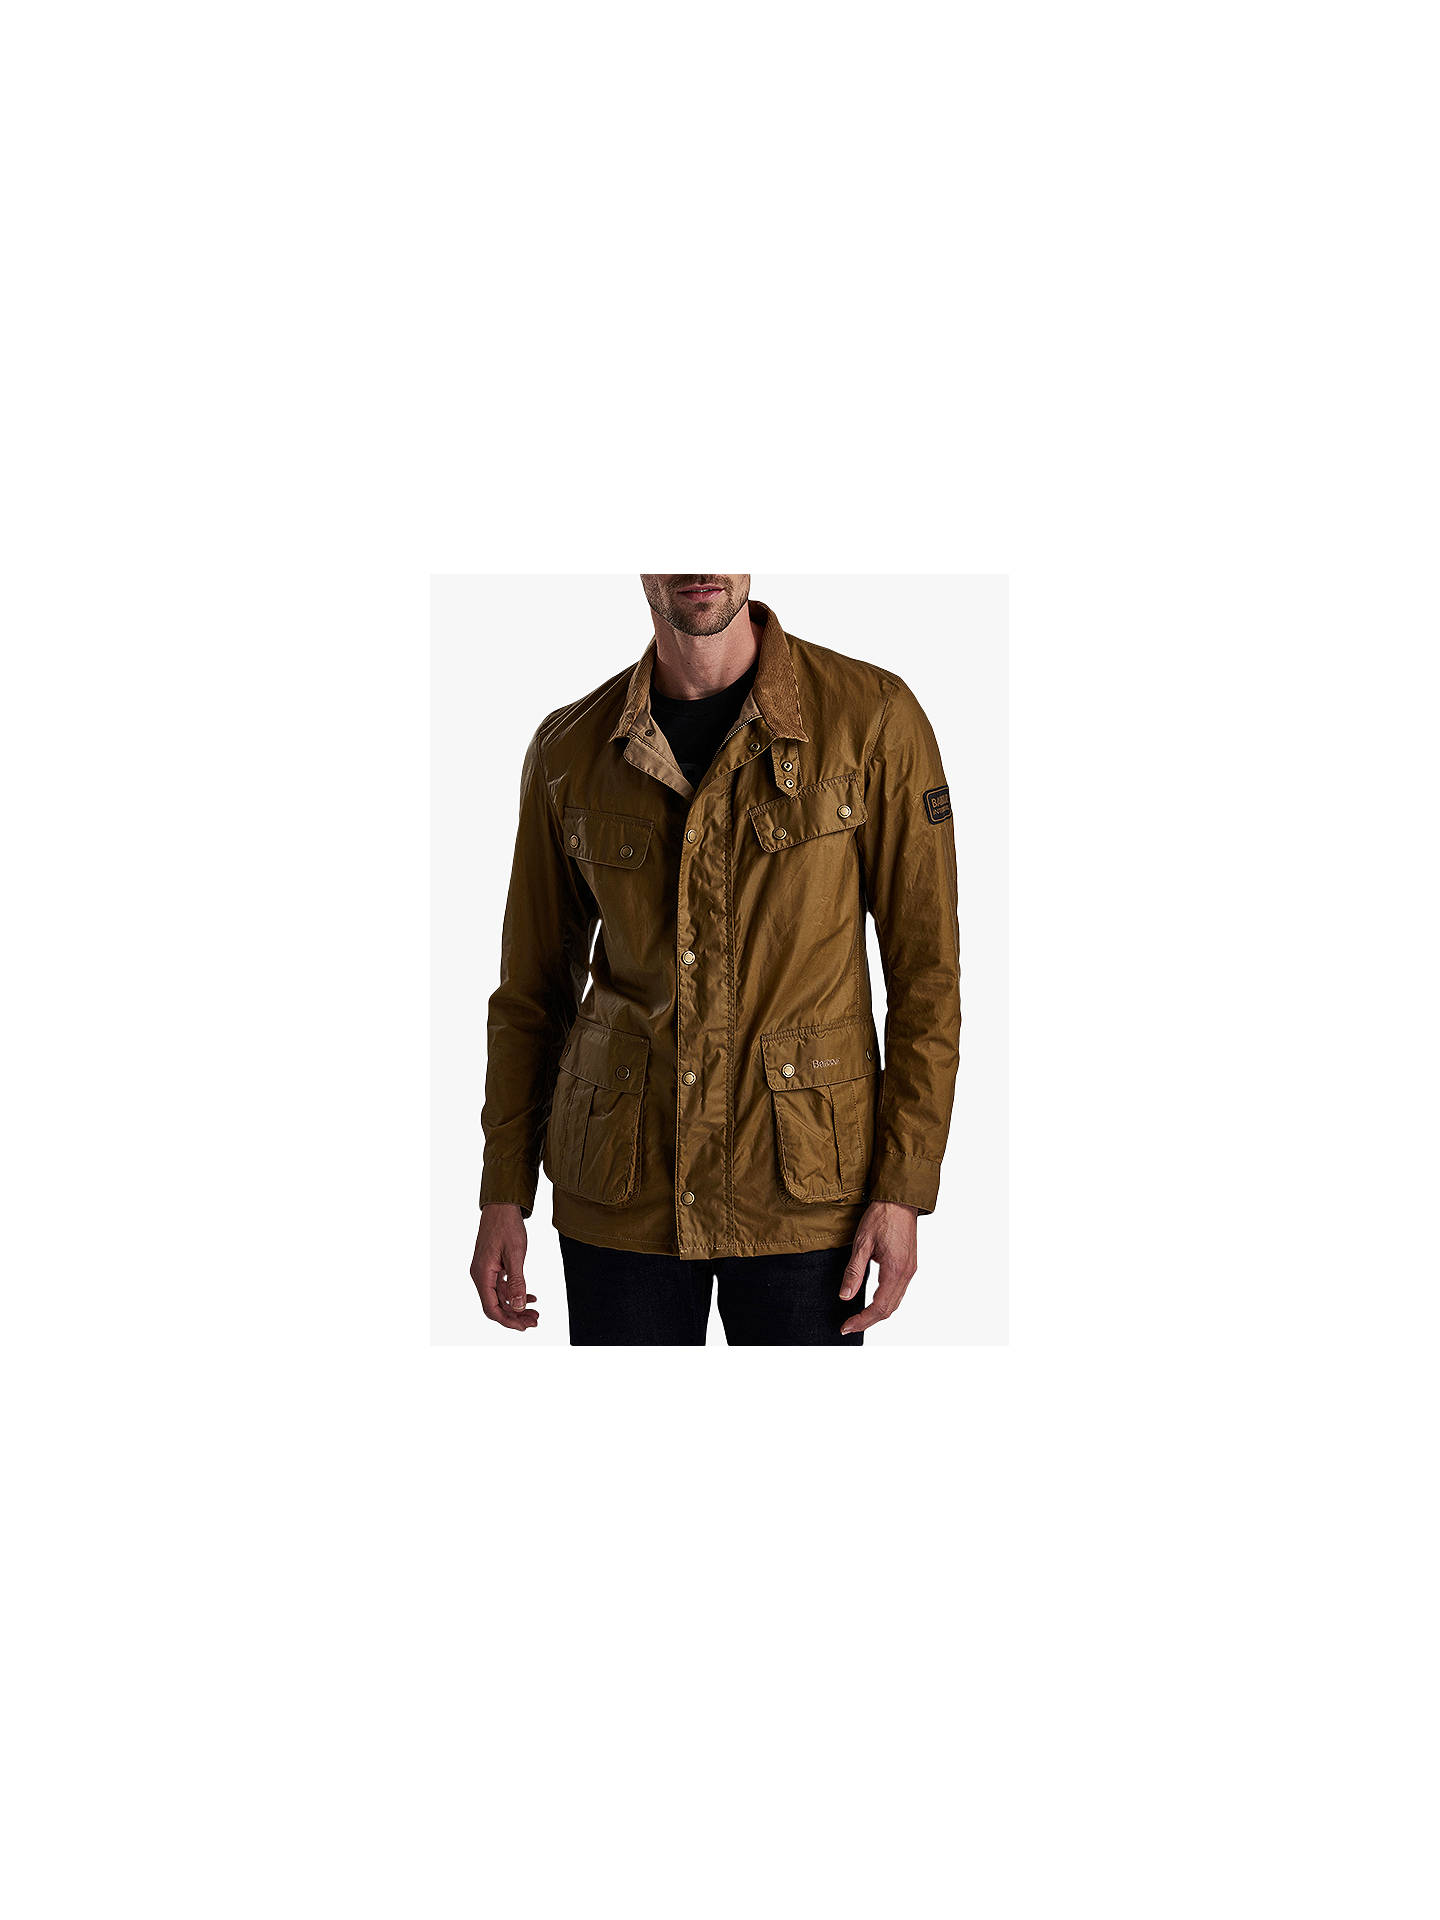 BuyBarbour International Duke Wax Jacket, Sand, S Online at johnlewis.com